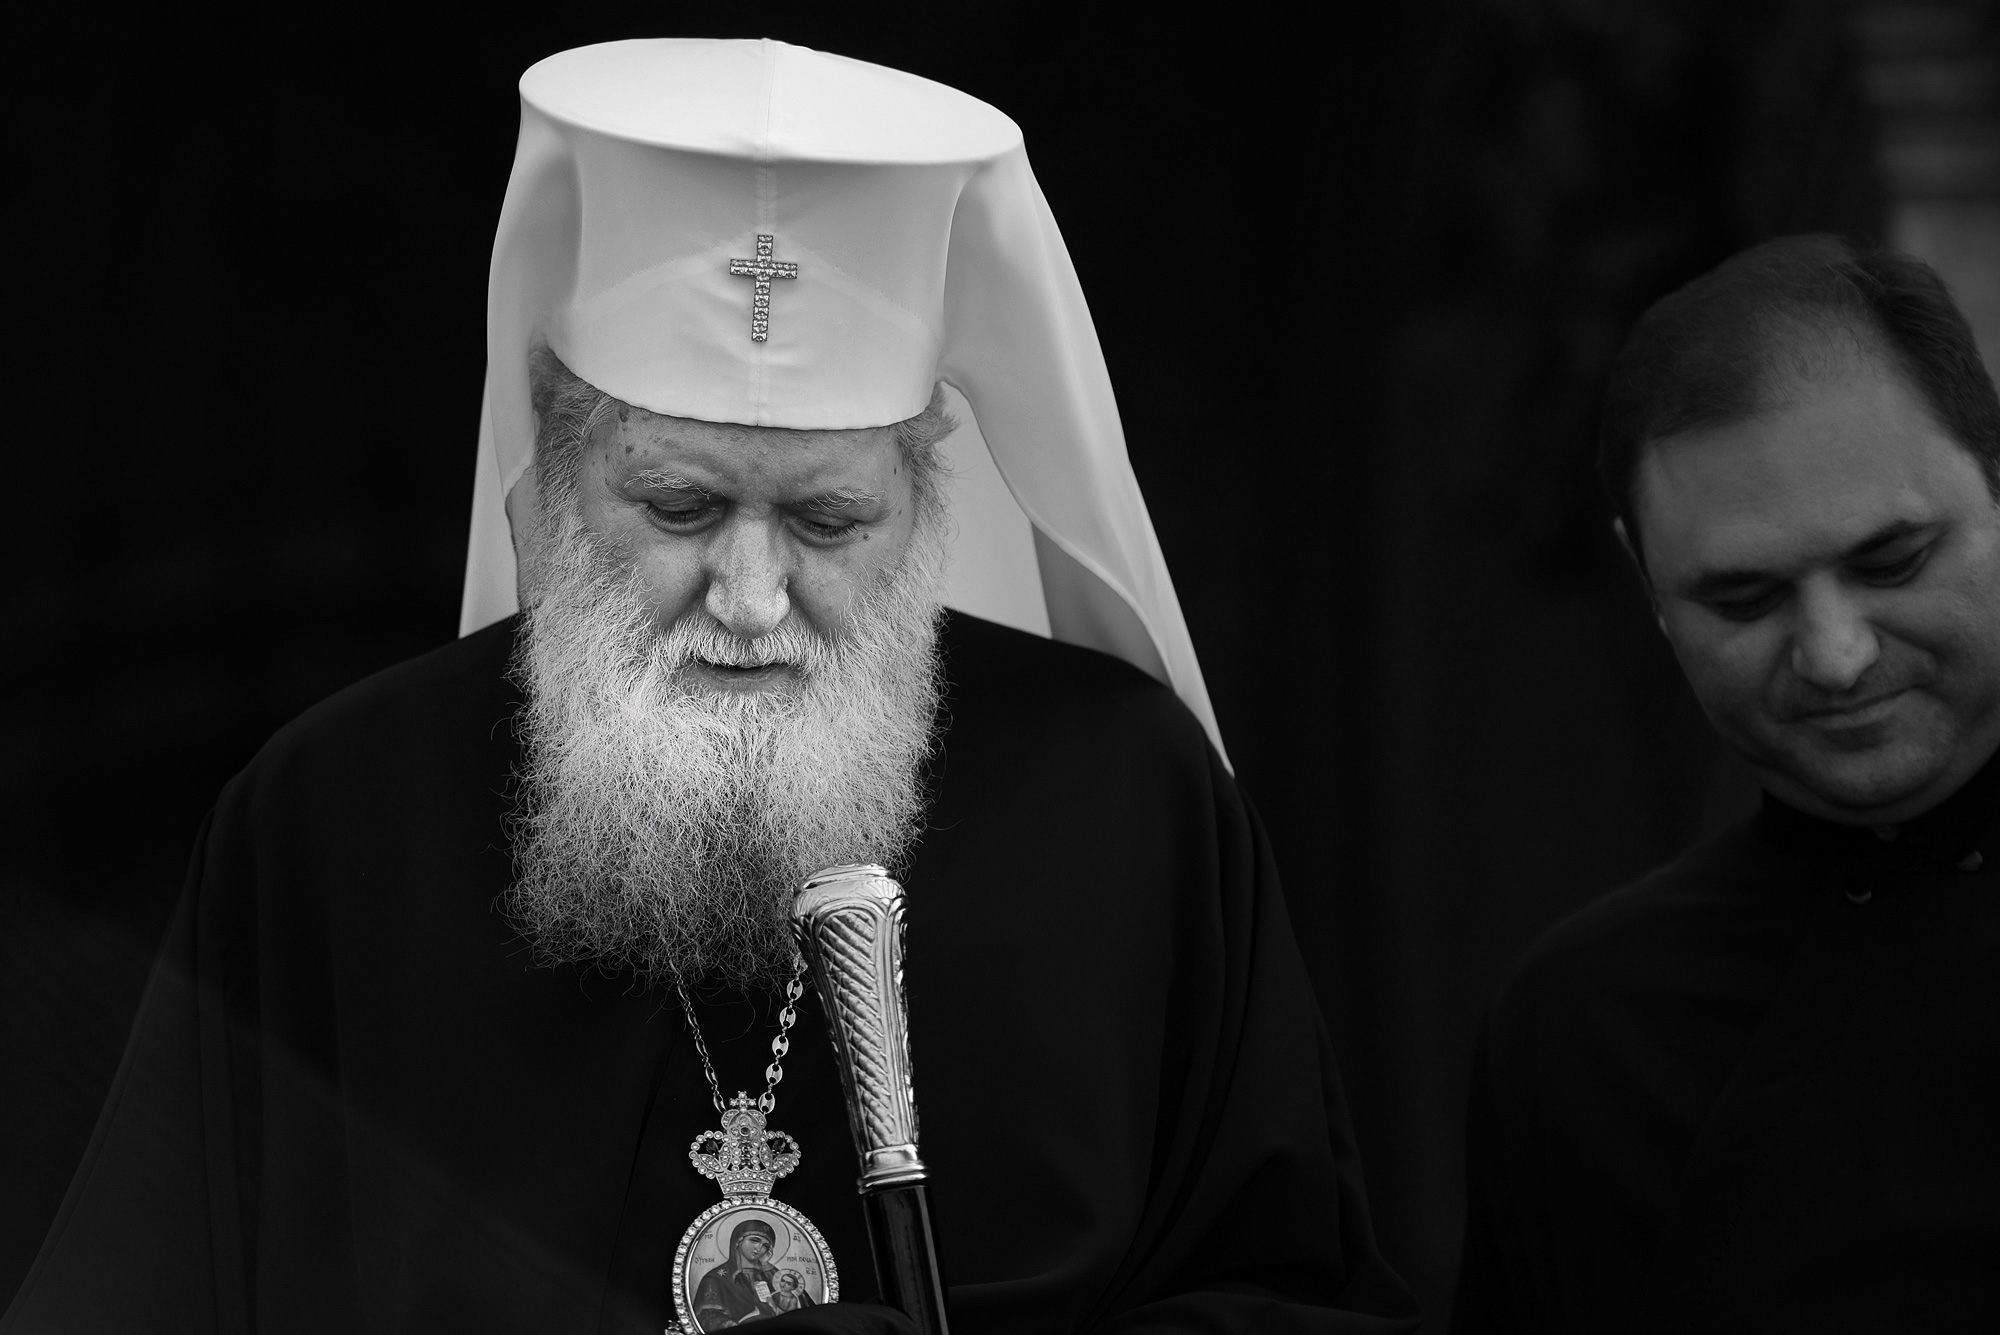 Patriarch Neophyte of Bulgaria